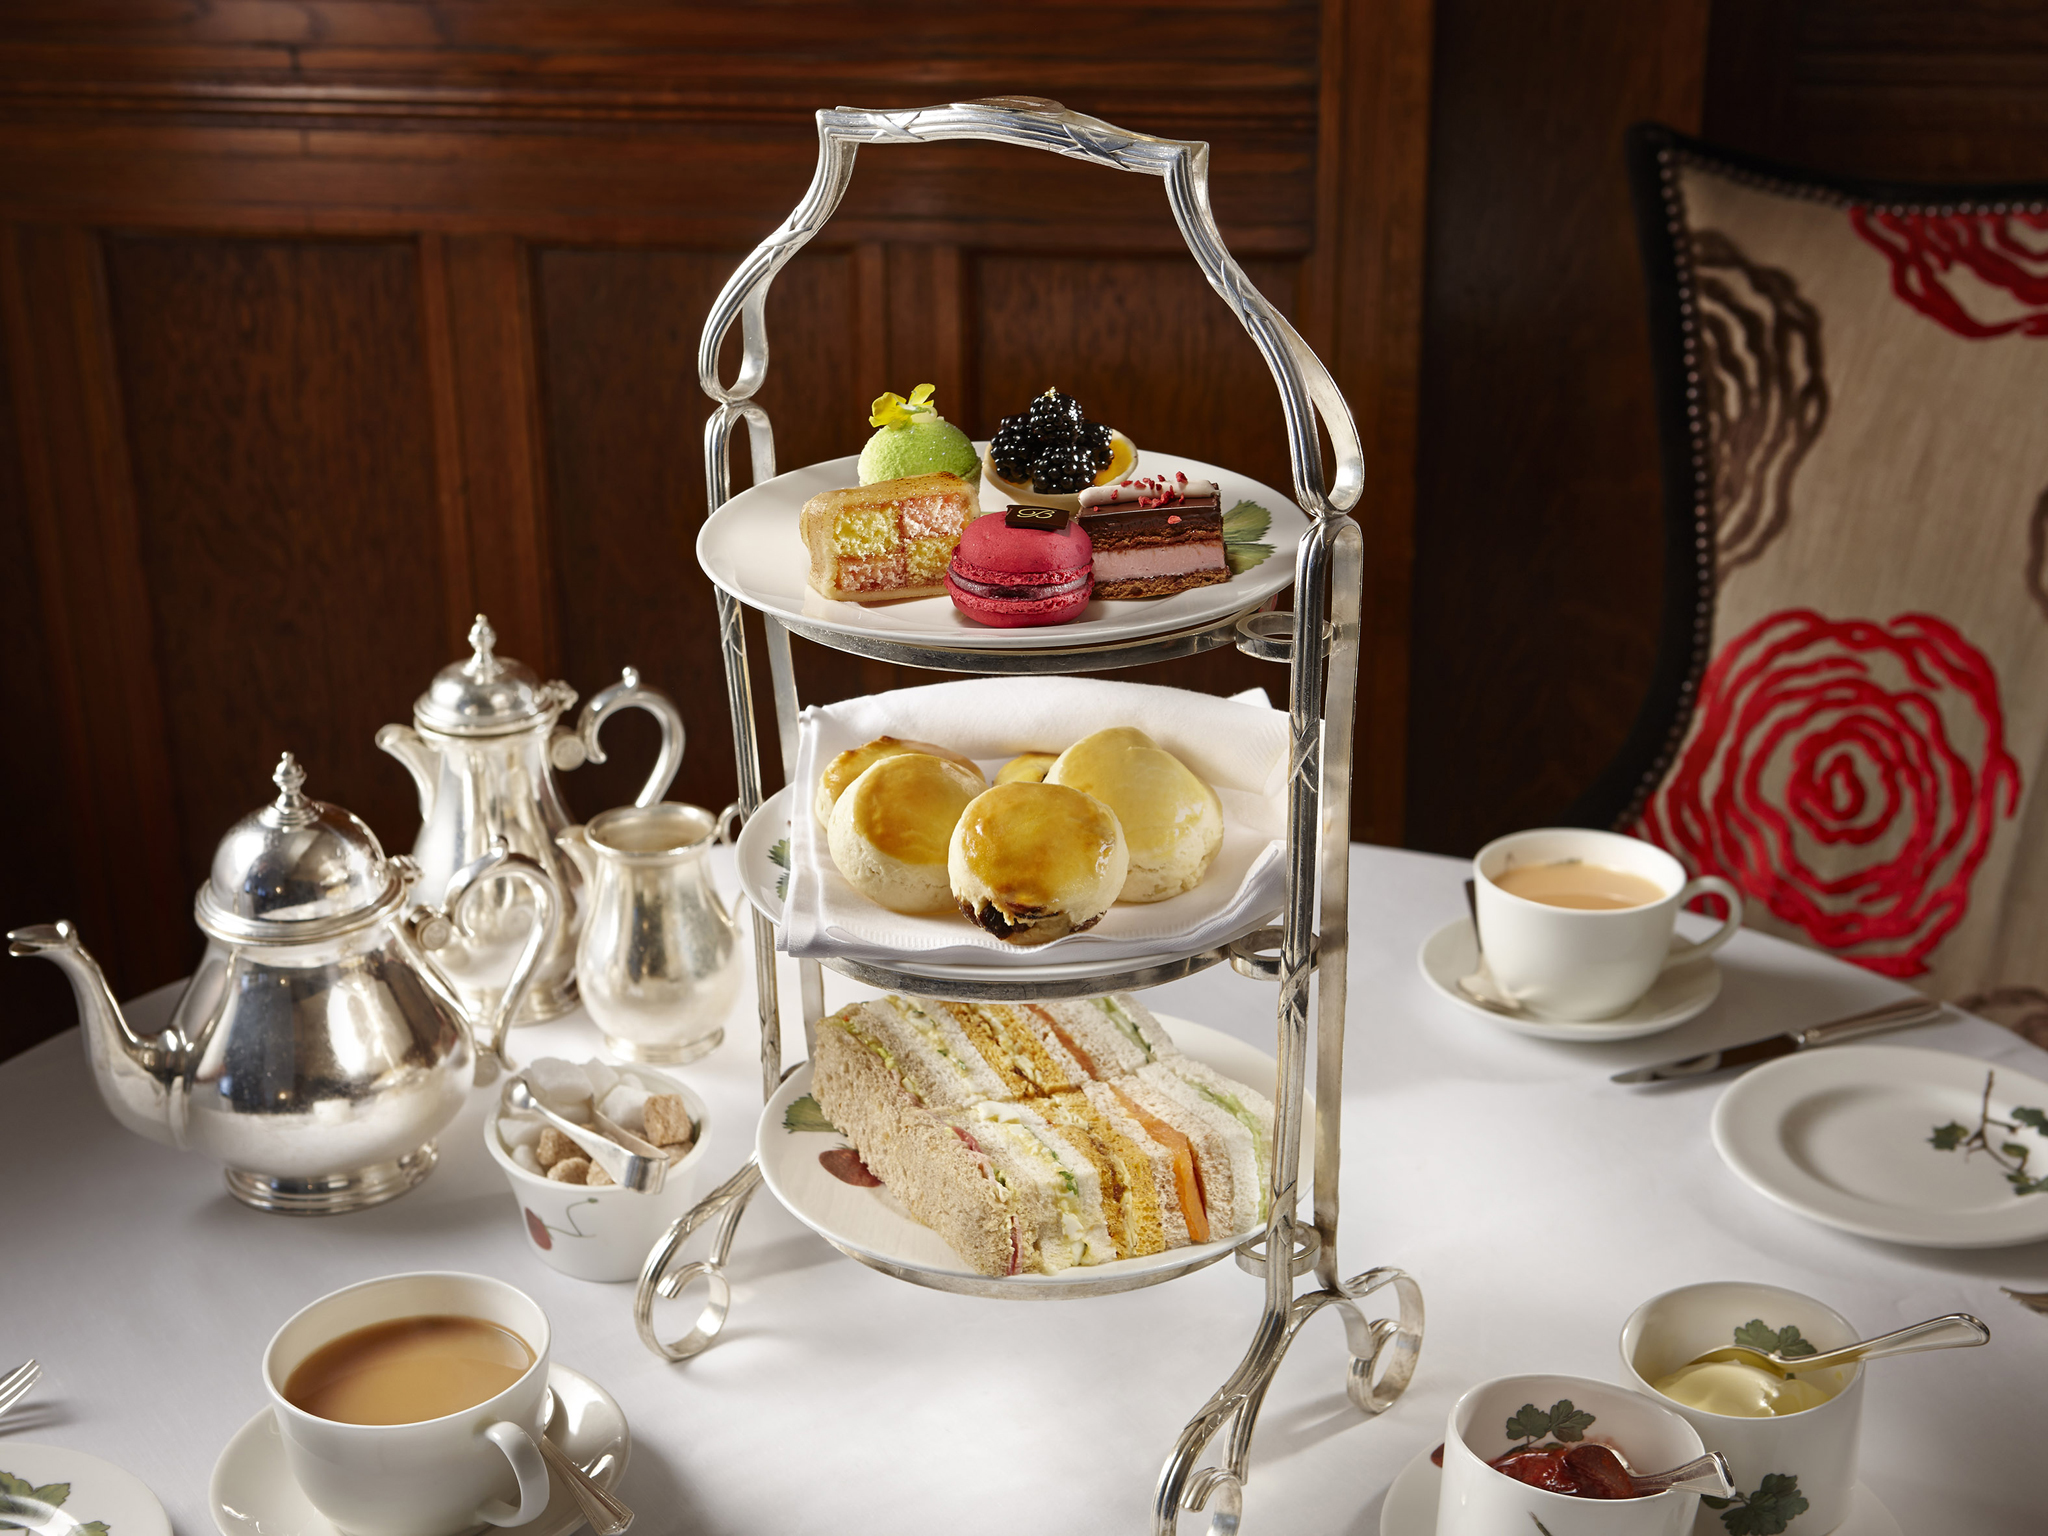 Afternoon tea at the English Tea Room, Brown's Hotel